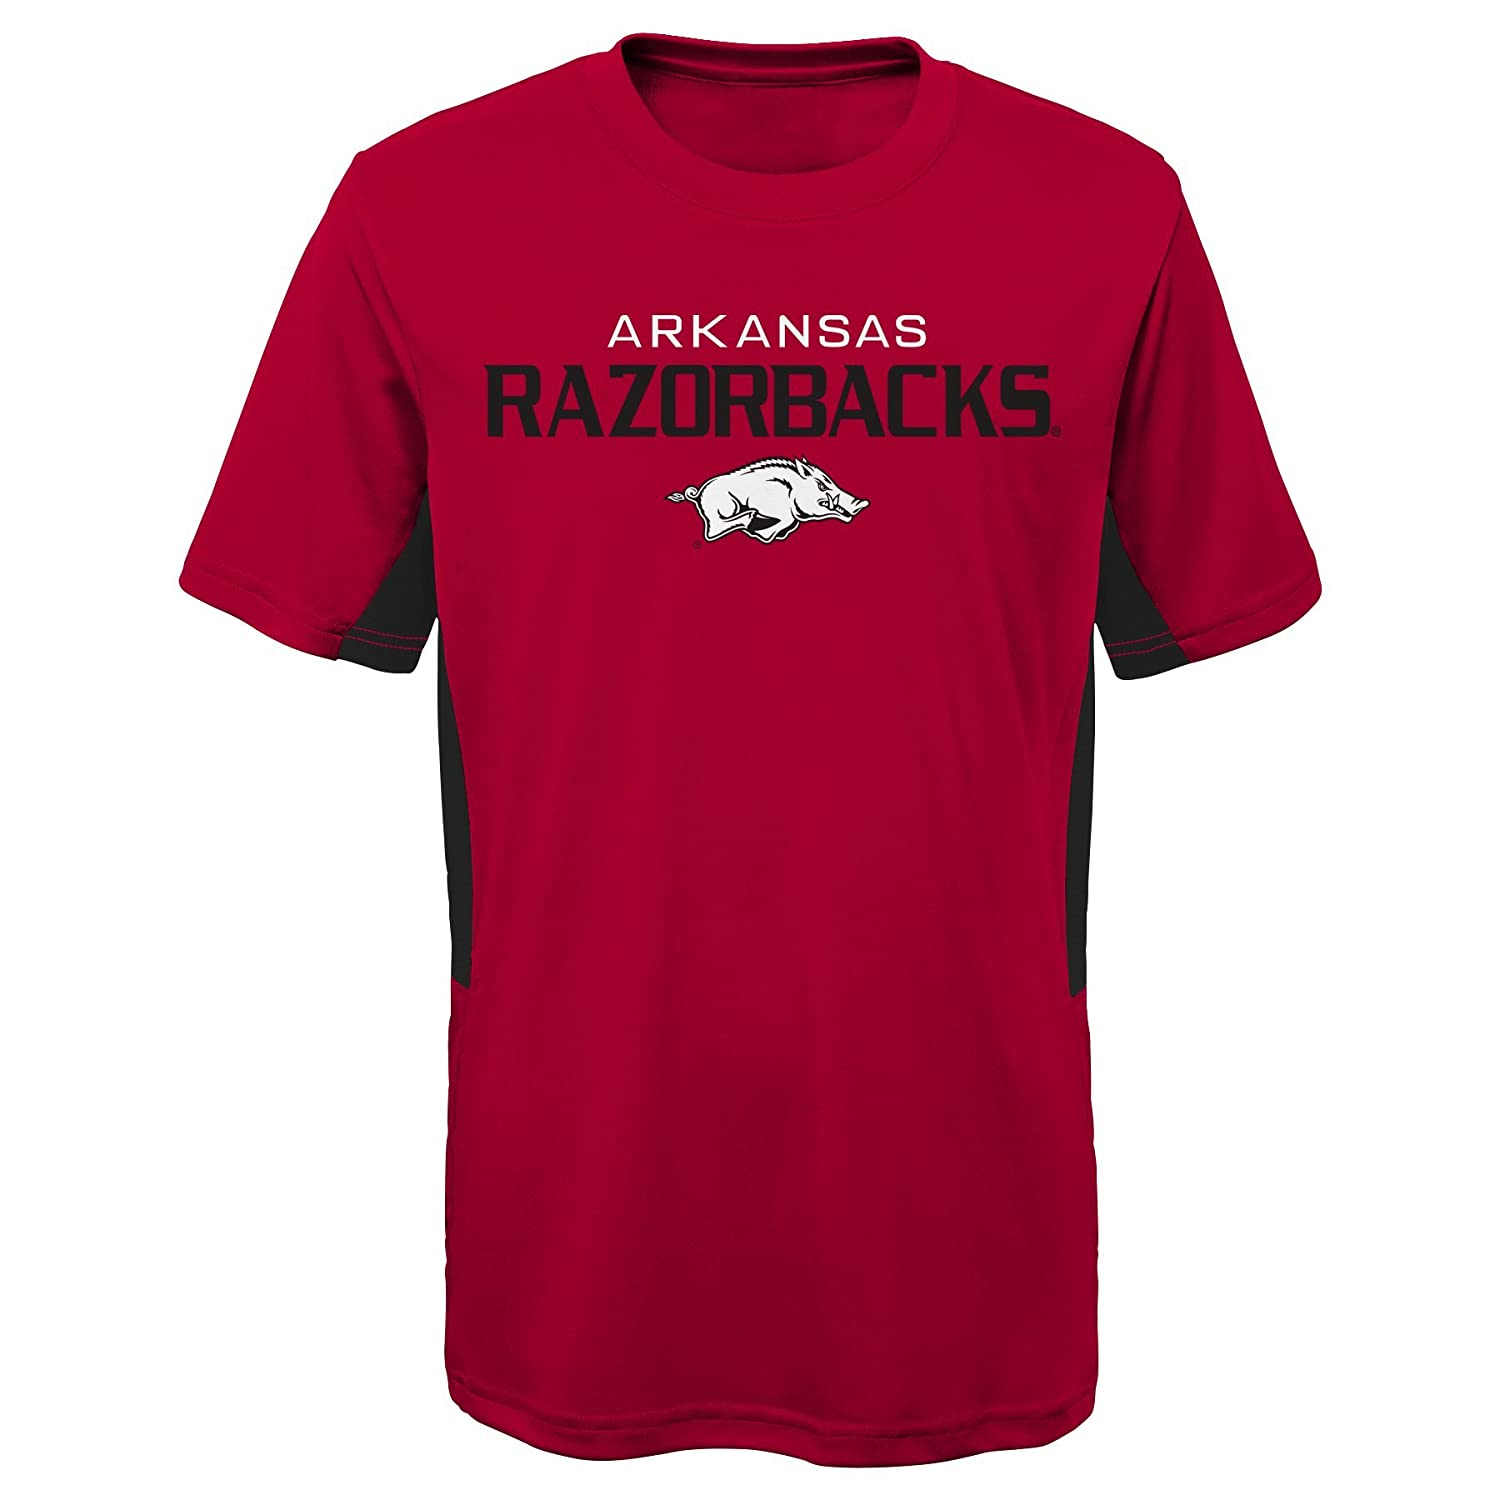 Youth Large Victory Red NCAA by Outerstuff NCAA Arkansas Razorbacks Youth Boys Mainframe: Short Sleeve Performance Top 14-16